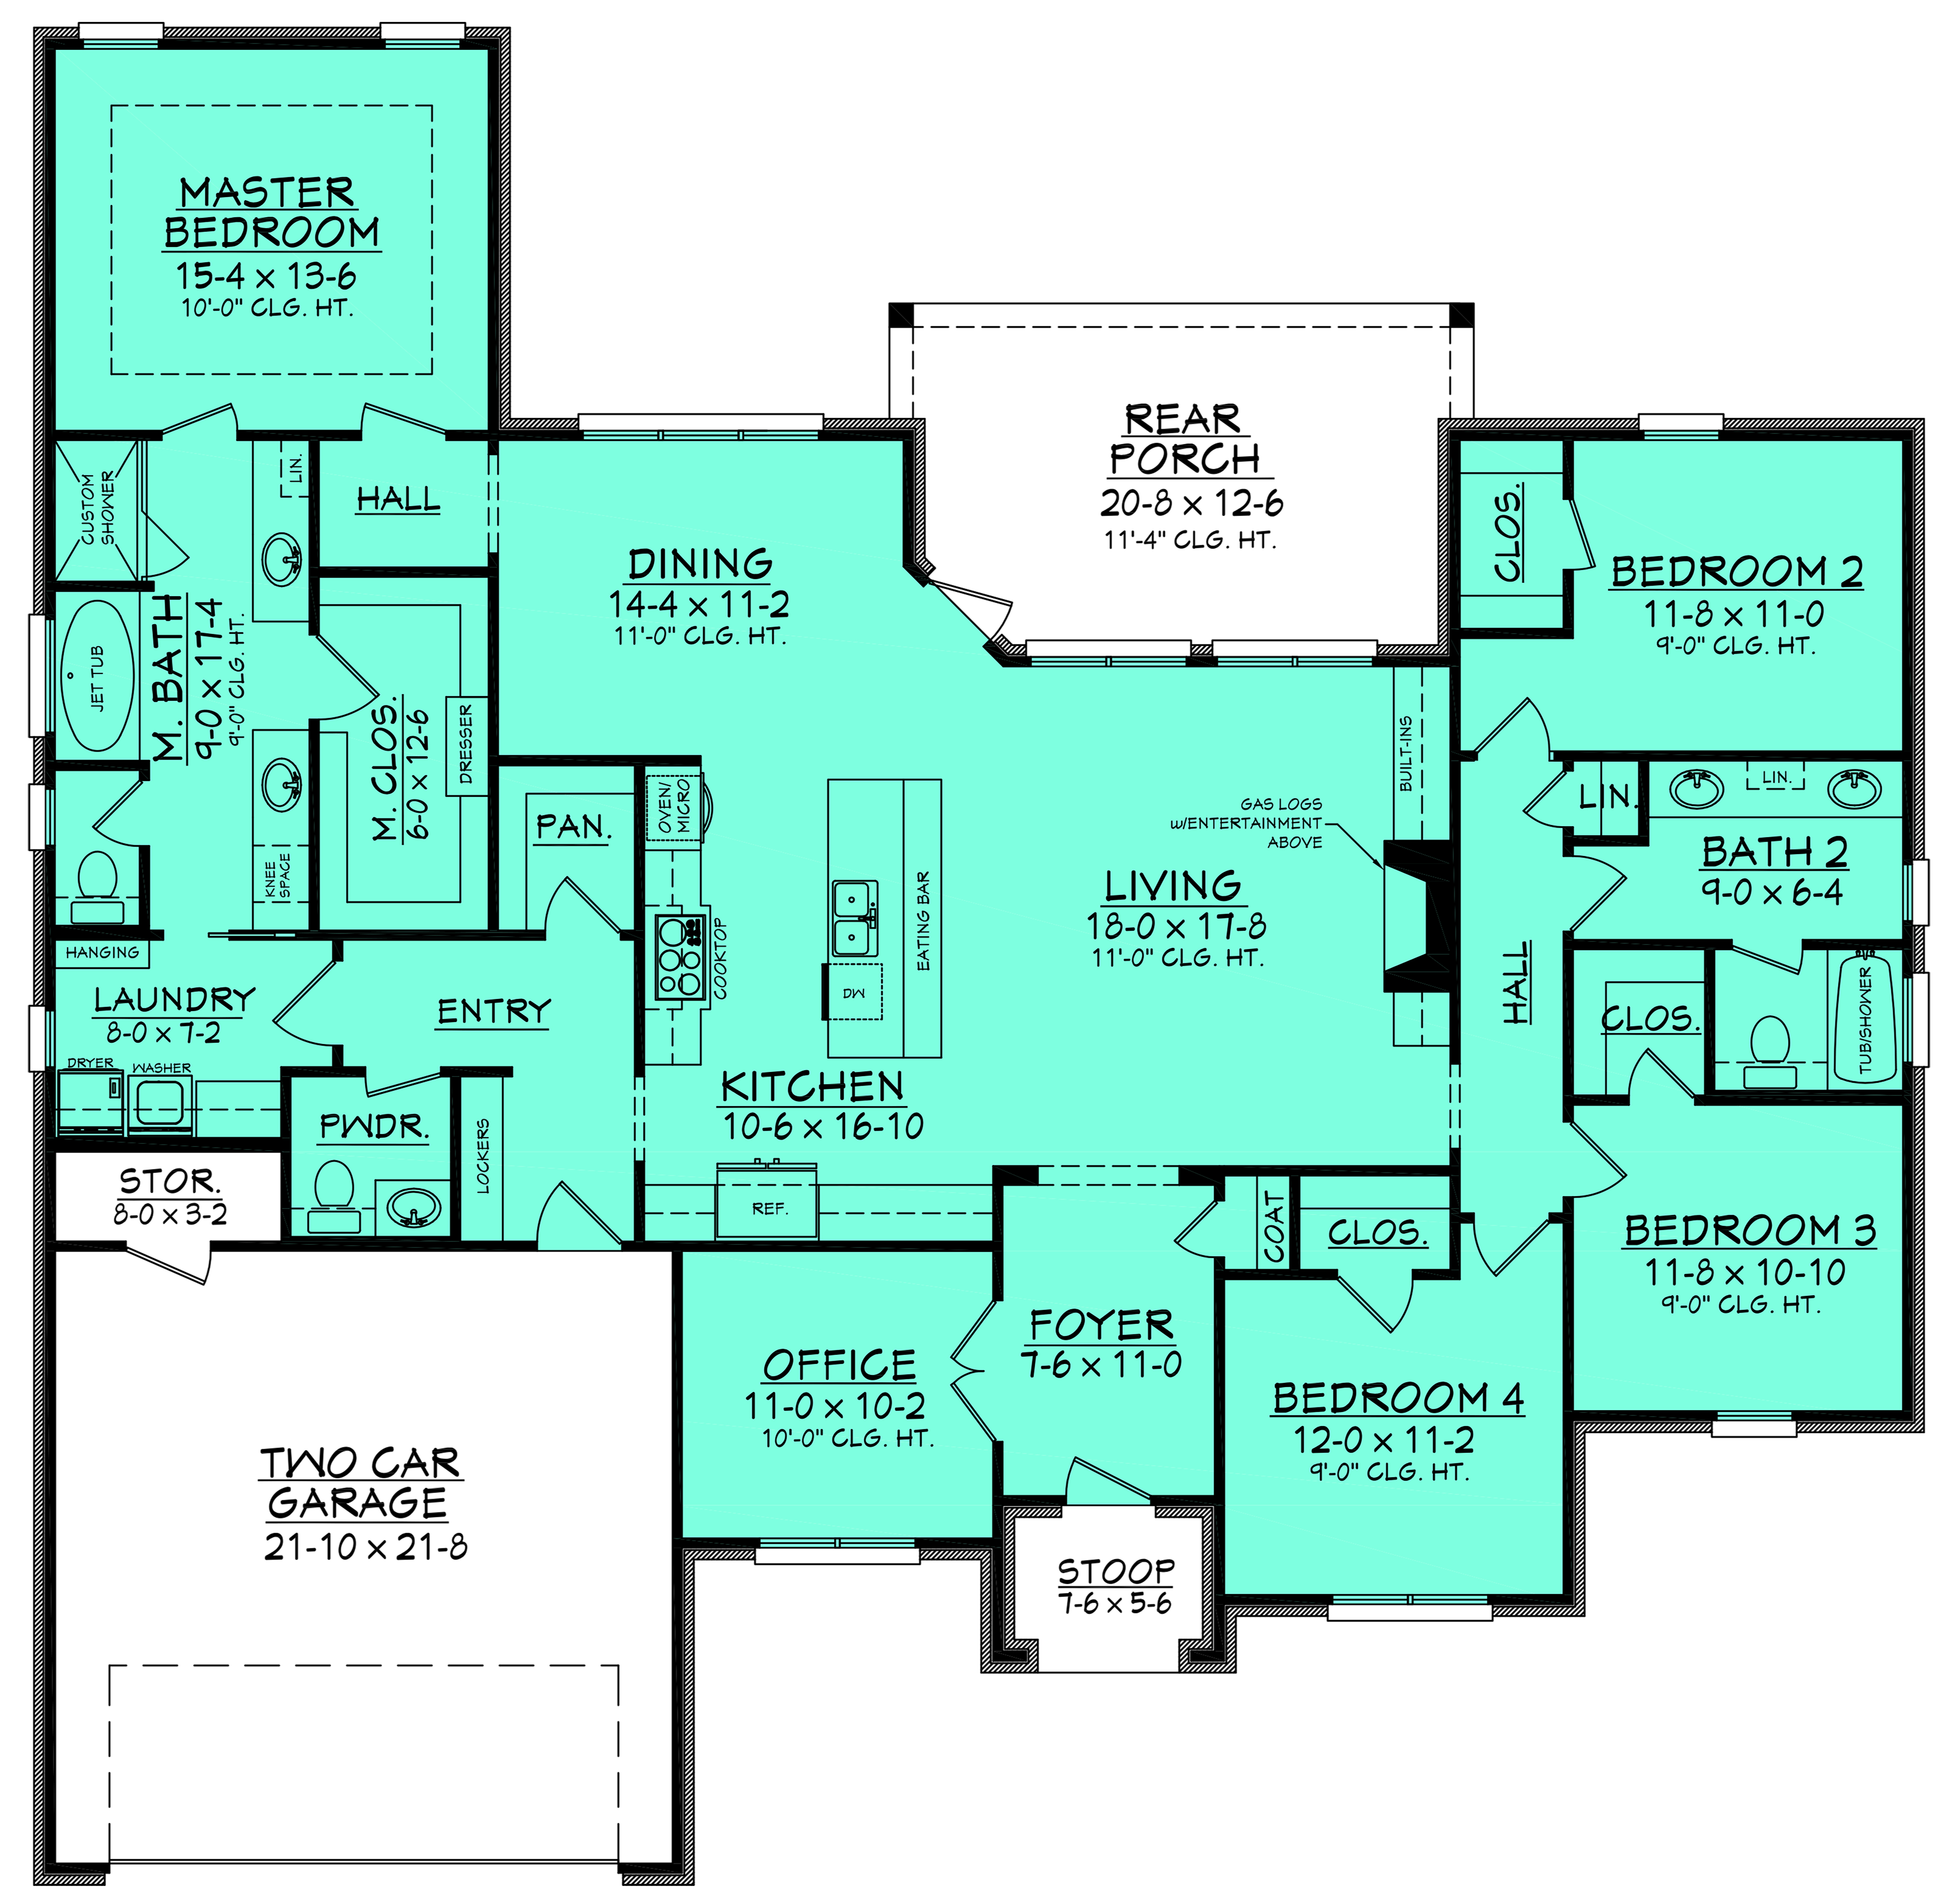 French house plan 142 1142 4 bedrm 2380 sq ft home for The plan collection house plans